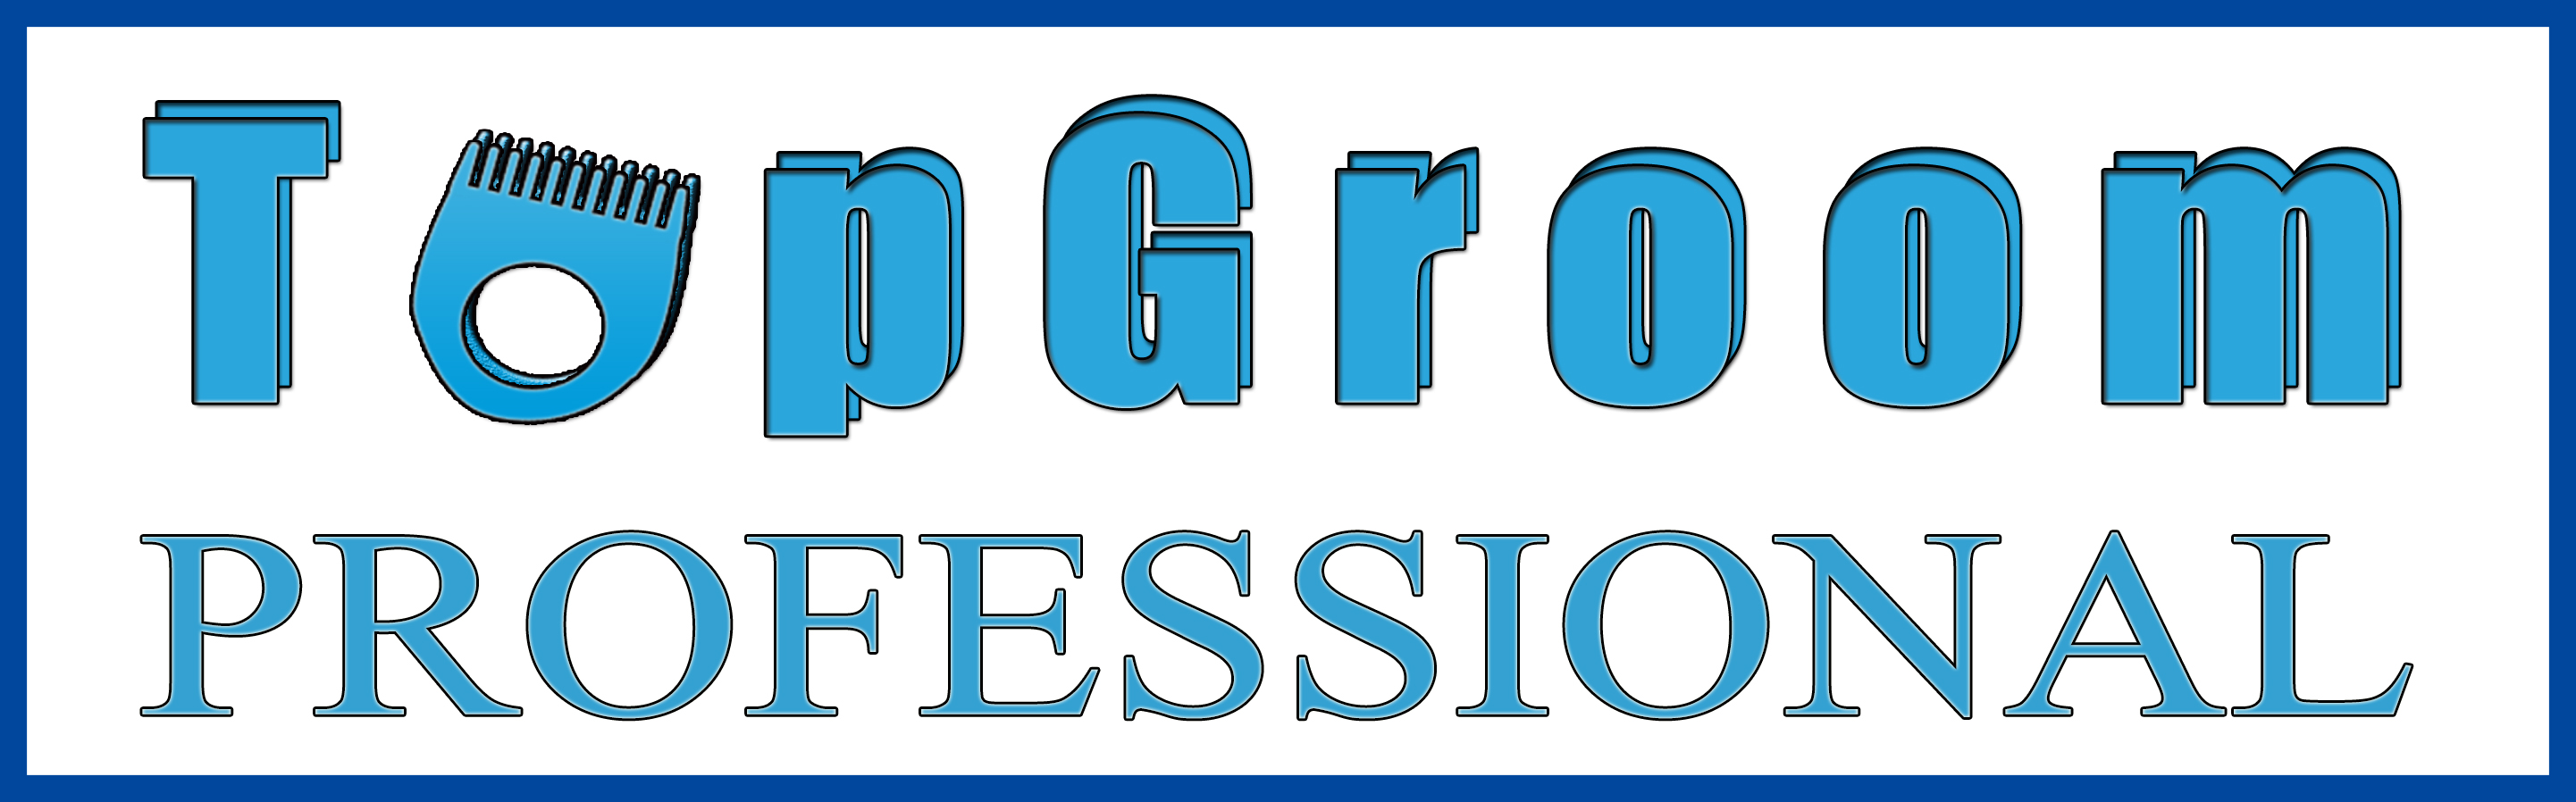 Welcome to TopGroom & Lambo,10-year-plus Leading Asian Manufacturer of Professional Grooming clippers, trimmers,grooming supplies,tools,shears,scissors,Barber hair clippers,barber supplies,ETC.